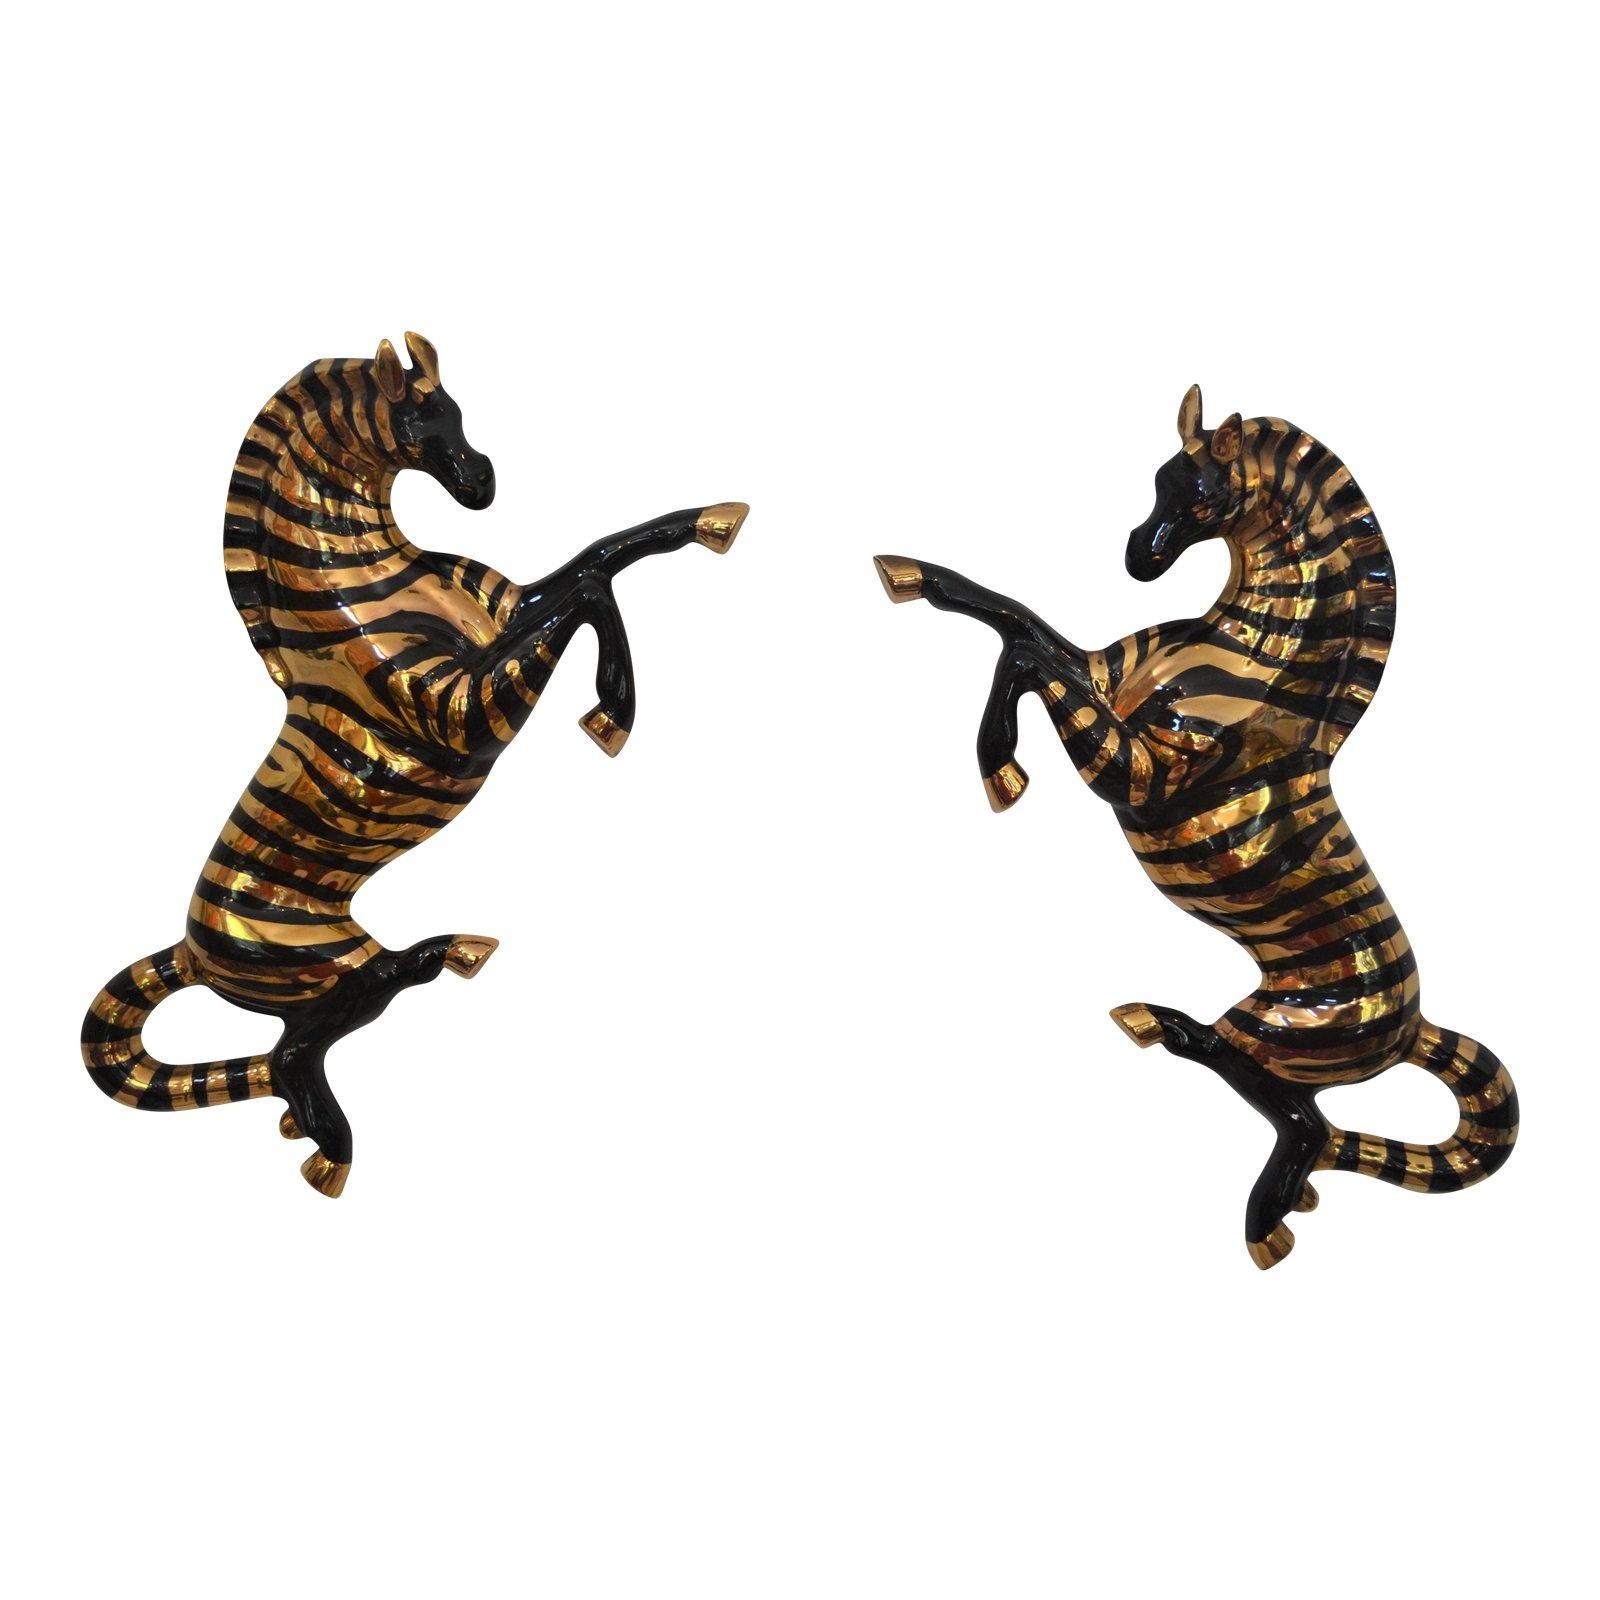 large-ceramic-zebras-8776.jpeg